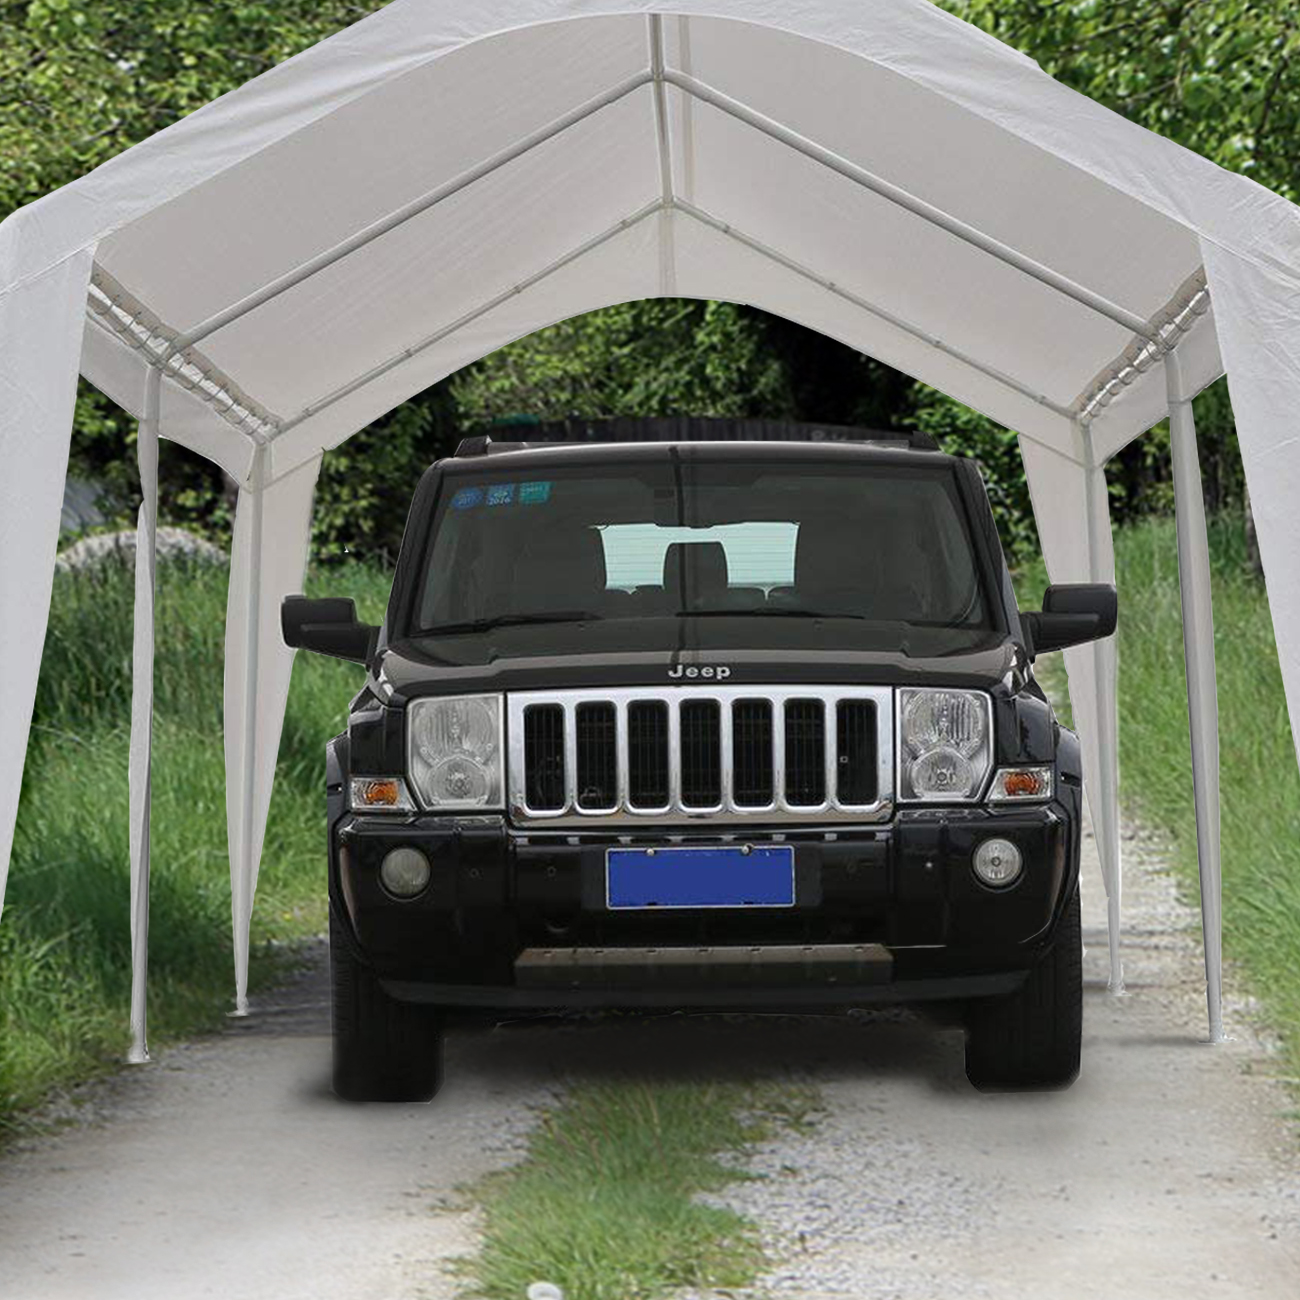 Abba Patio 10 x 20 Ft Heavy Duty Carport Canopy with 6 Steel Leg Support White